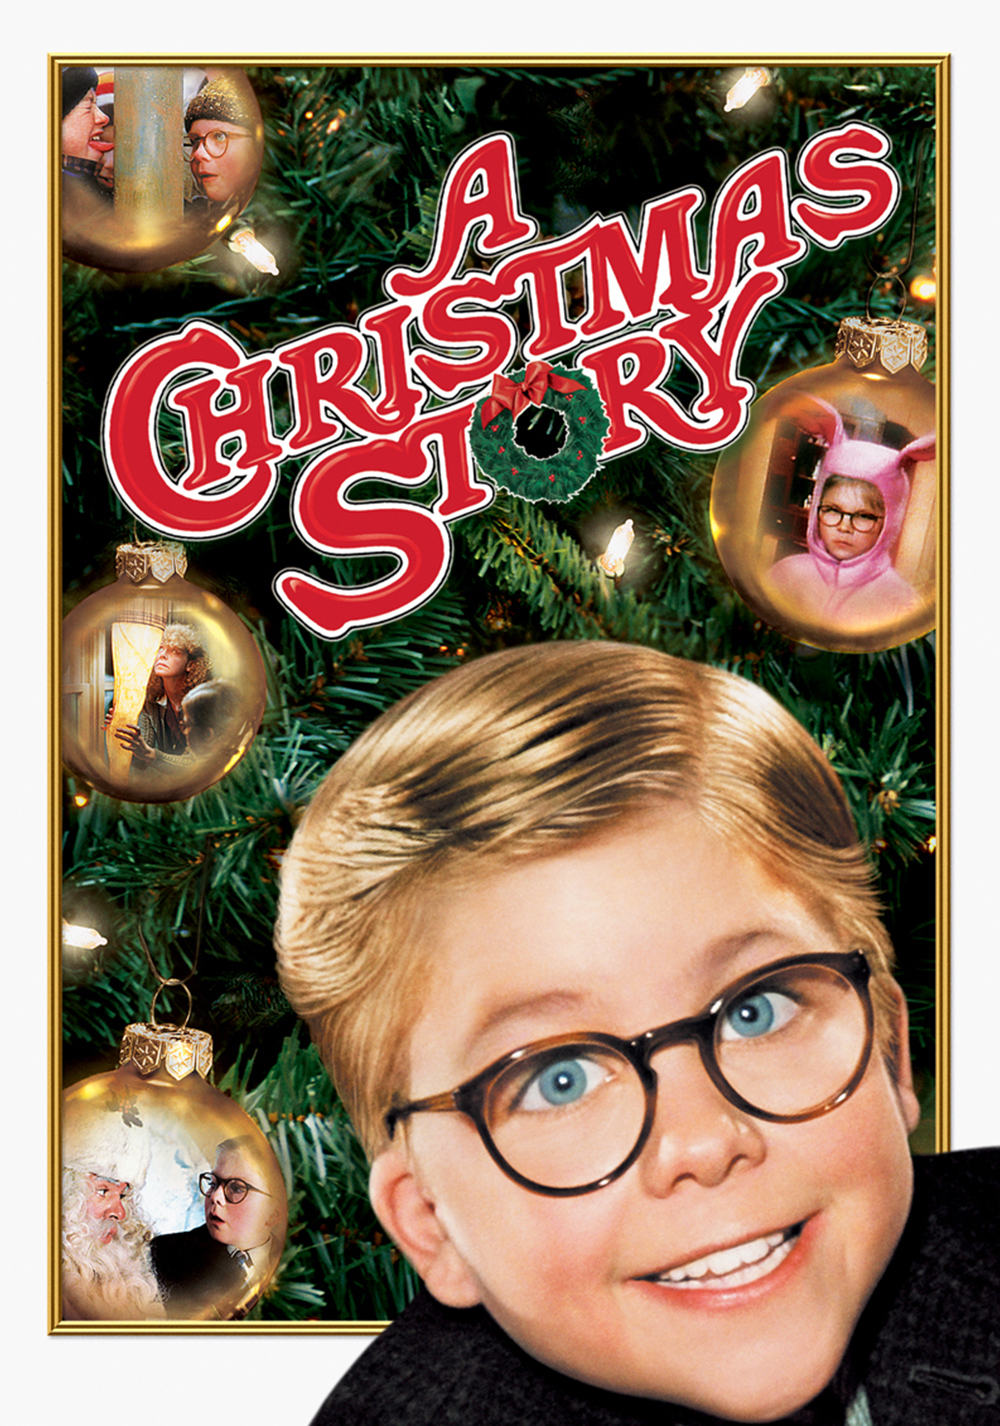 Tickets for A Christmas Story in Grapevine from Grapevine TicketLine